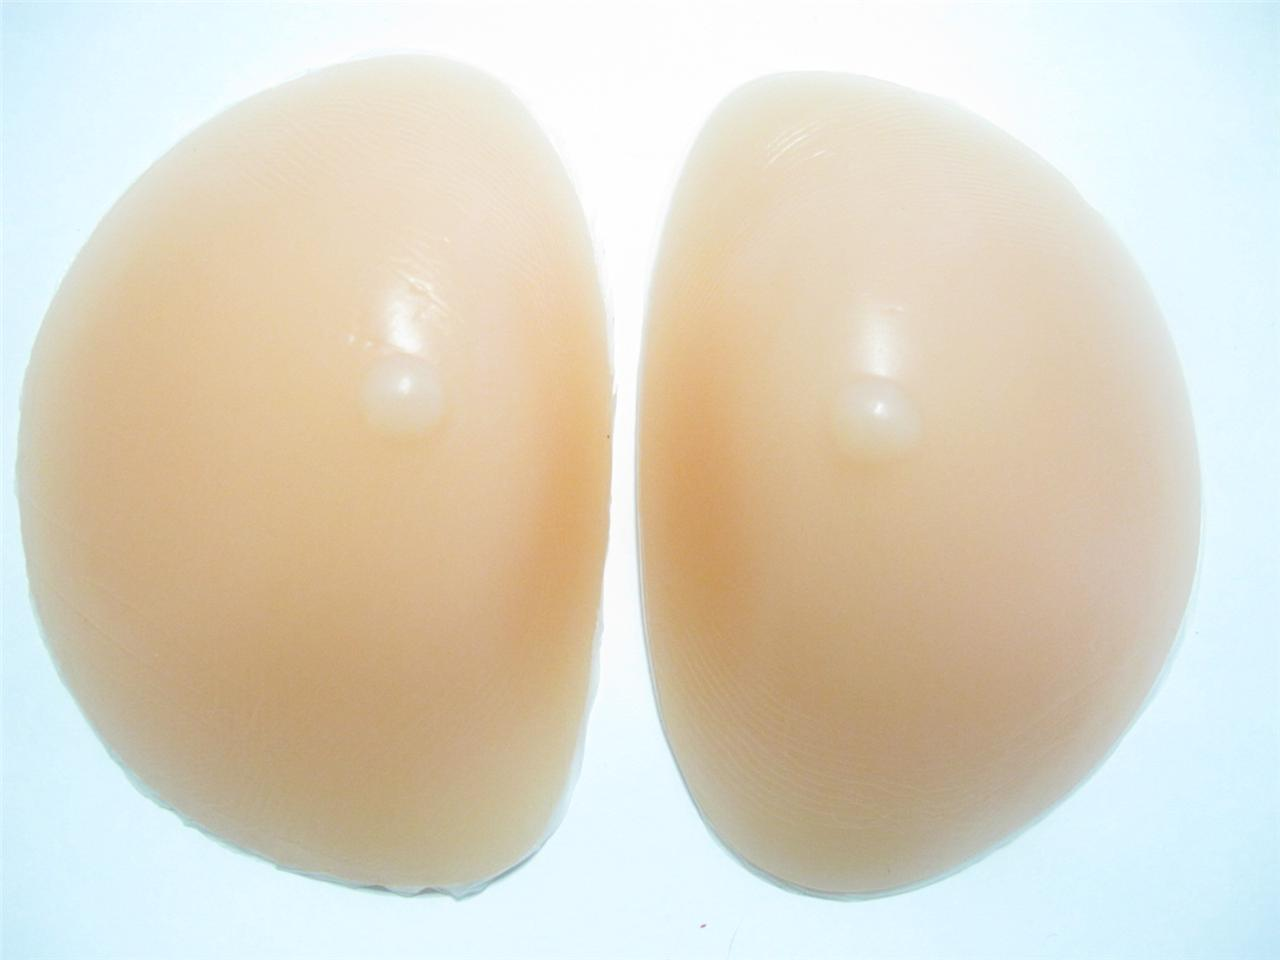 Amazoncom: Silicone Breast Enhancer with Brown Nipple